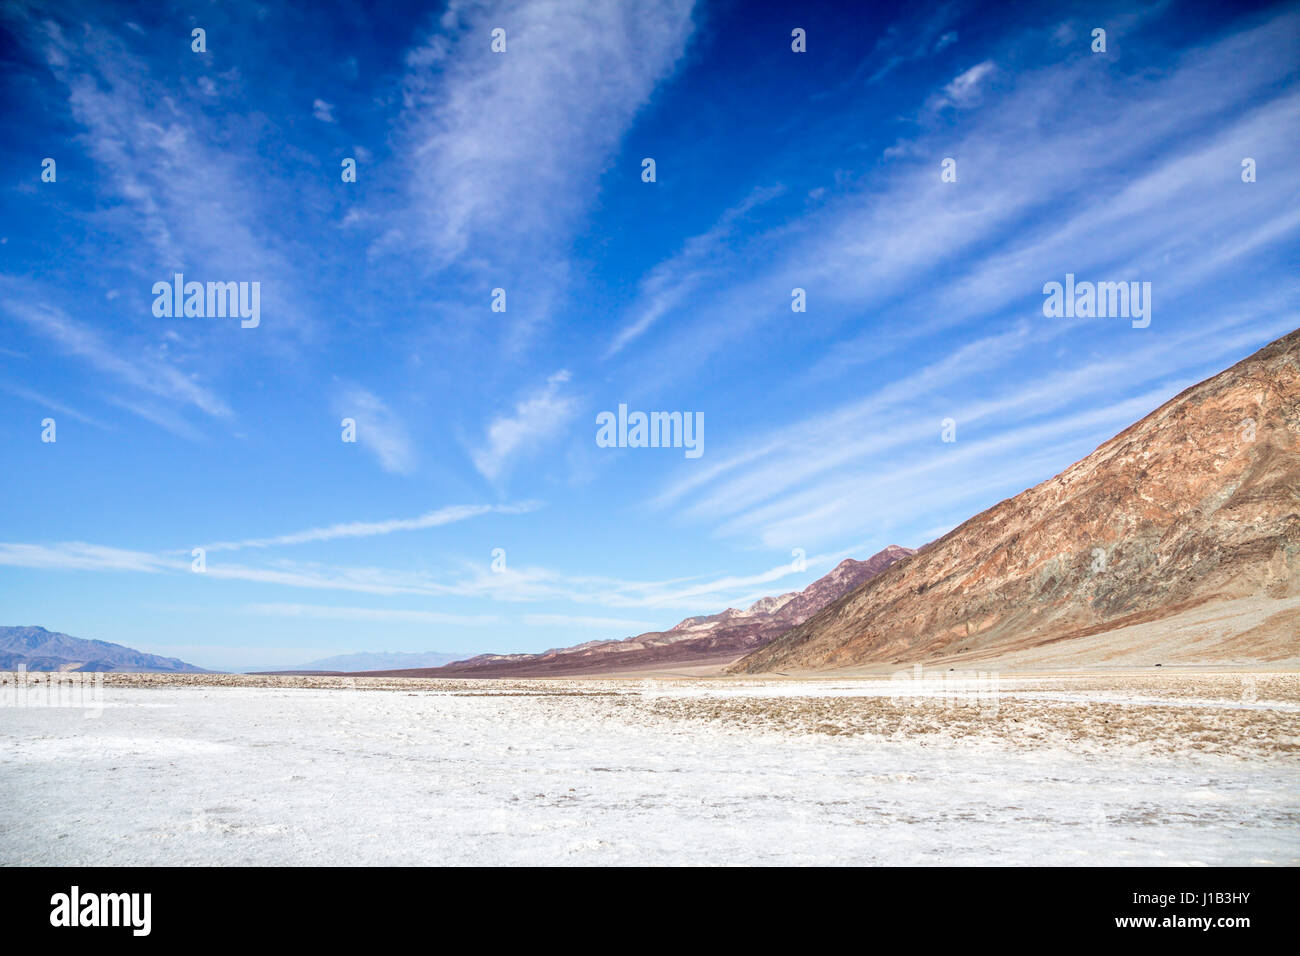 Saltflats of Badwater Basin, Death Valley National Park, CA.  Under a deep blue sky, radiating cirrus clouds lead - Stock Image